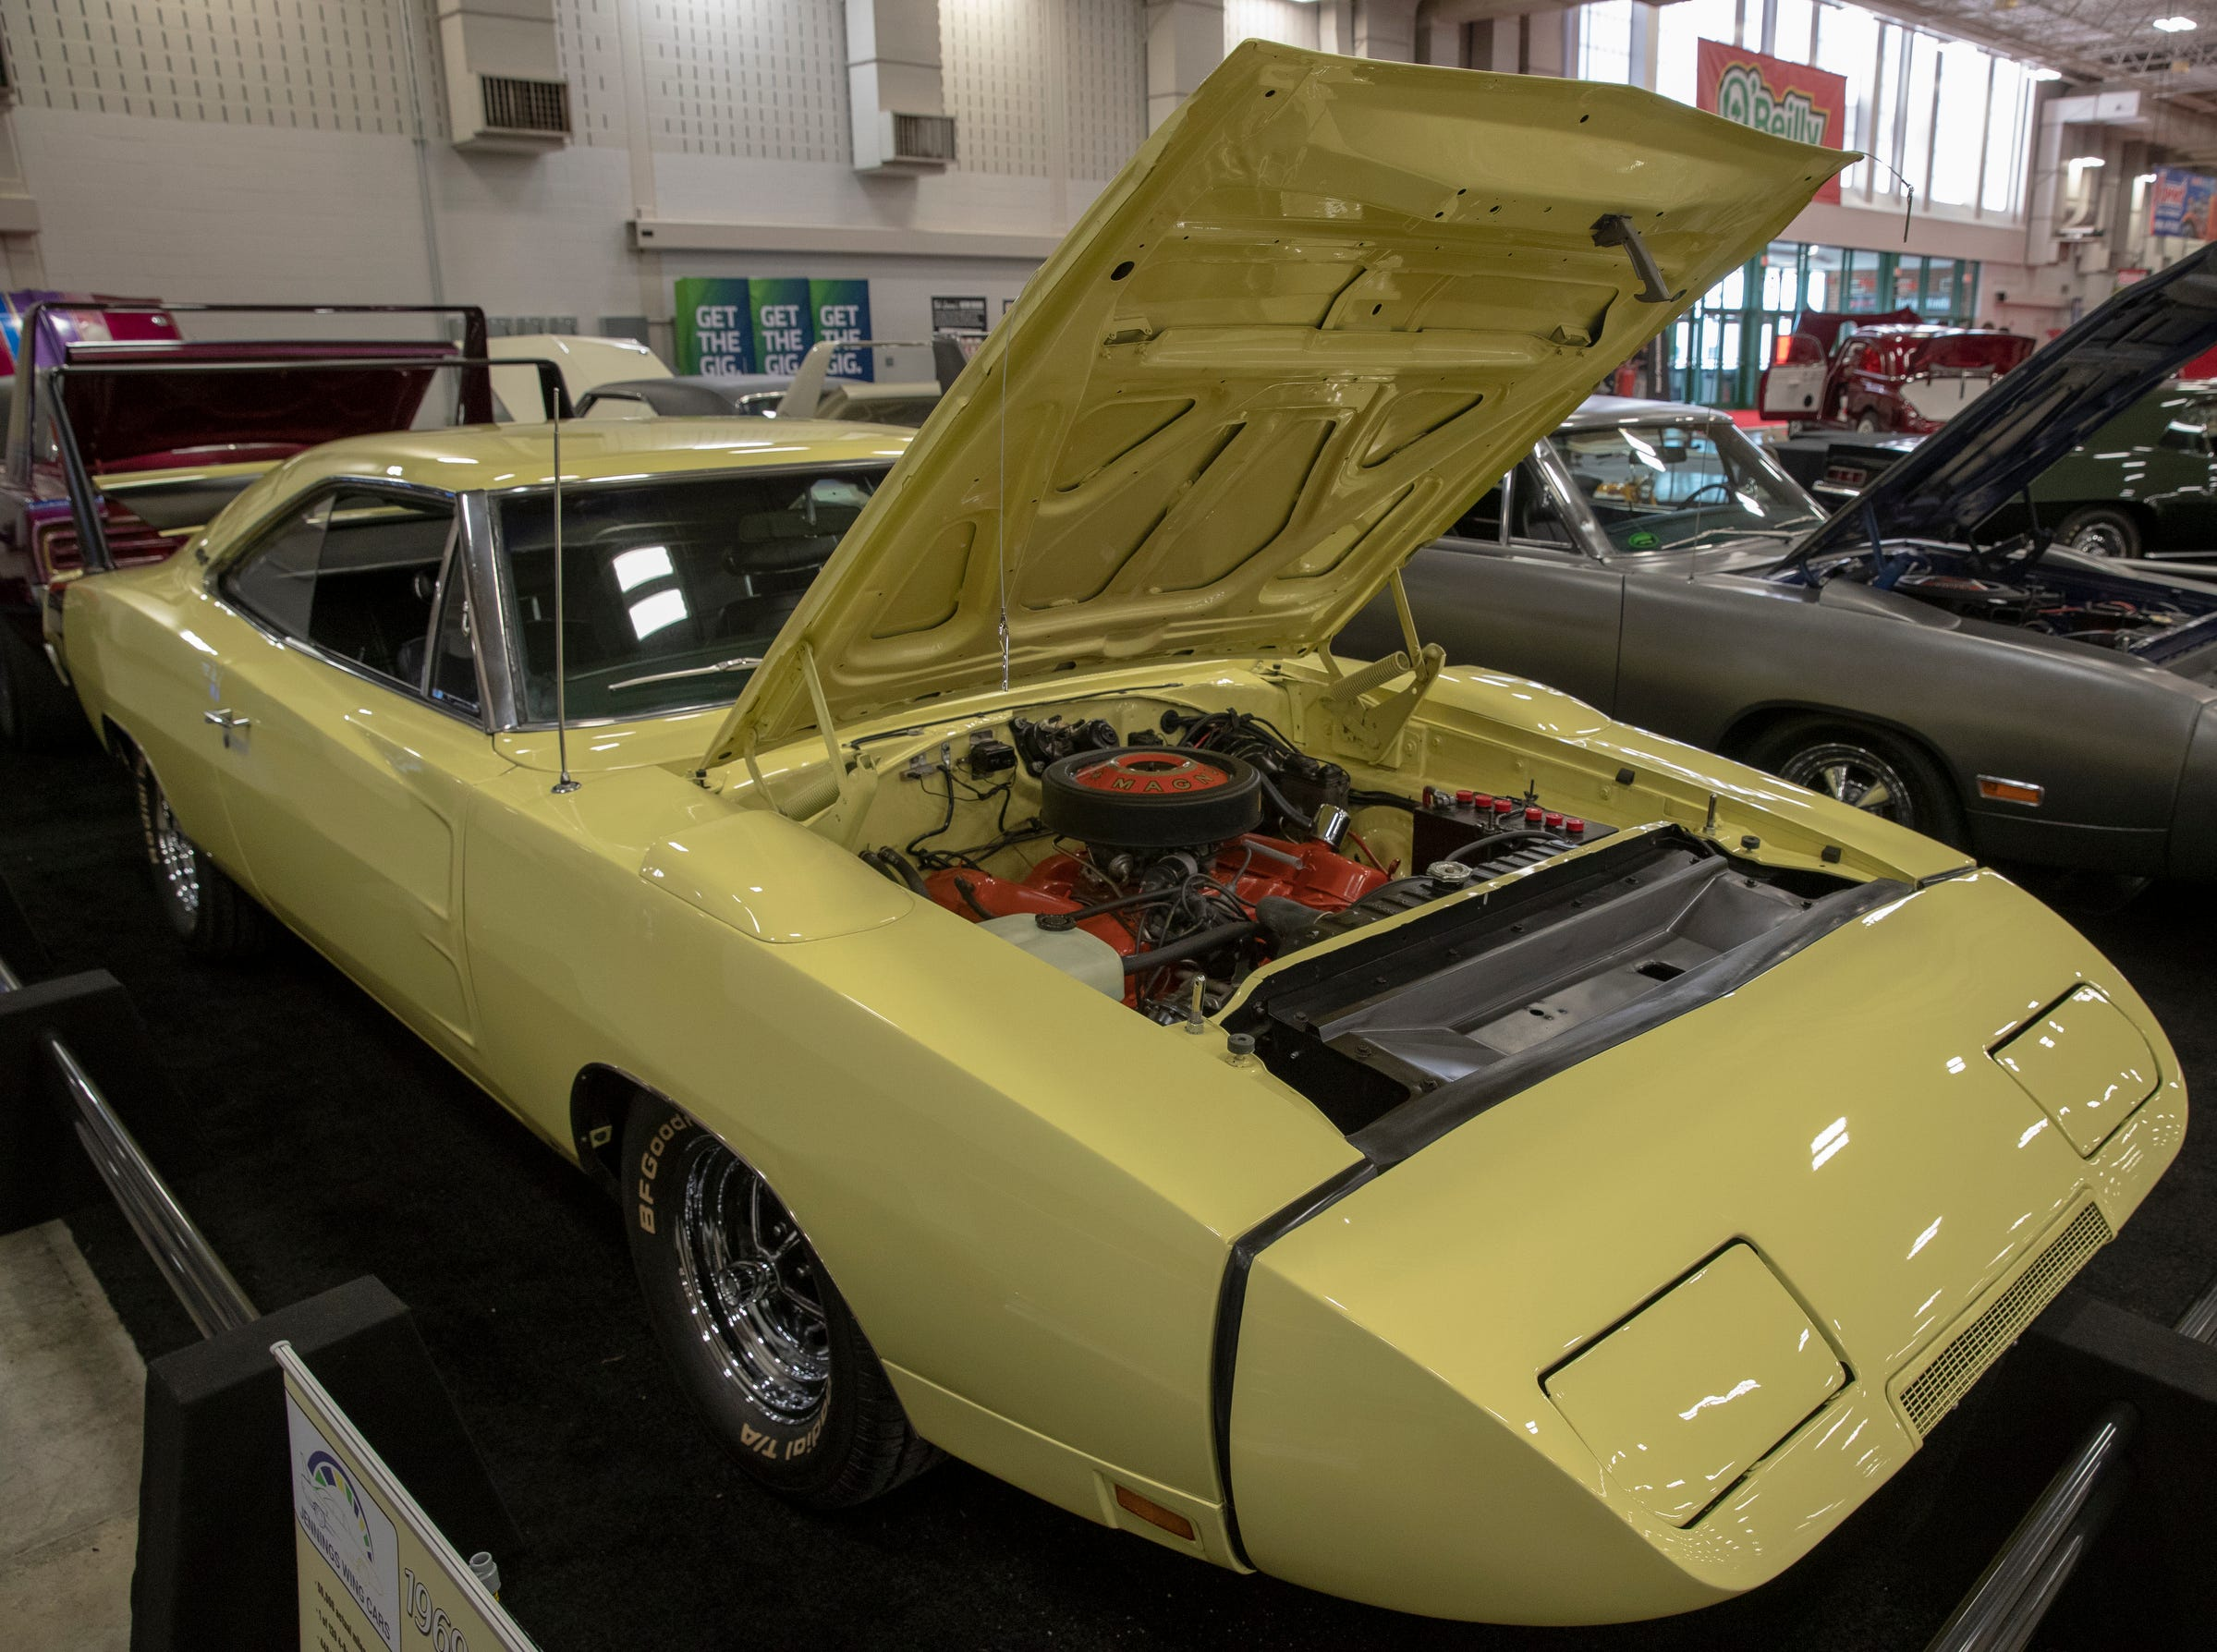 A 1969 Dodge Daytona, at World of Wheels at the Indiana State Fairgrounds, Indianapolis, Friday, Feb. 8, 2019. The event runs through the weekend and features four big rooms of stock and heavily customized cars.